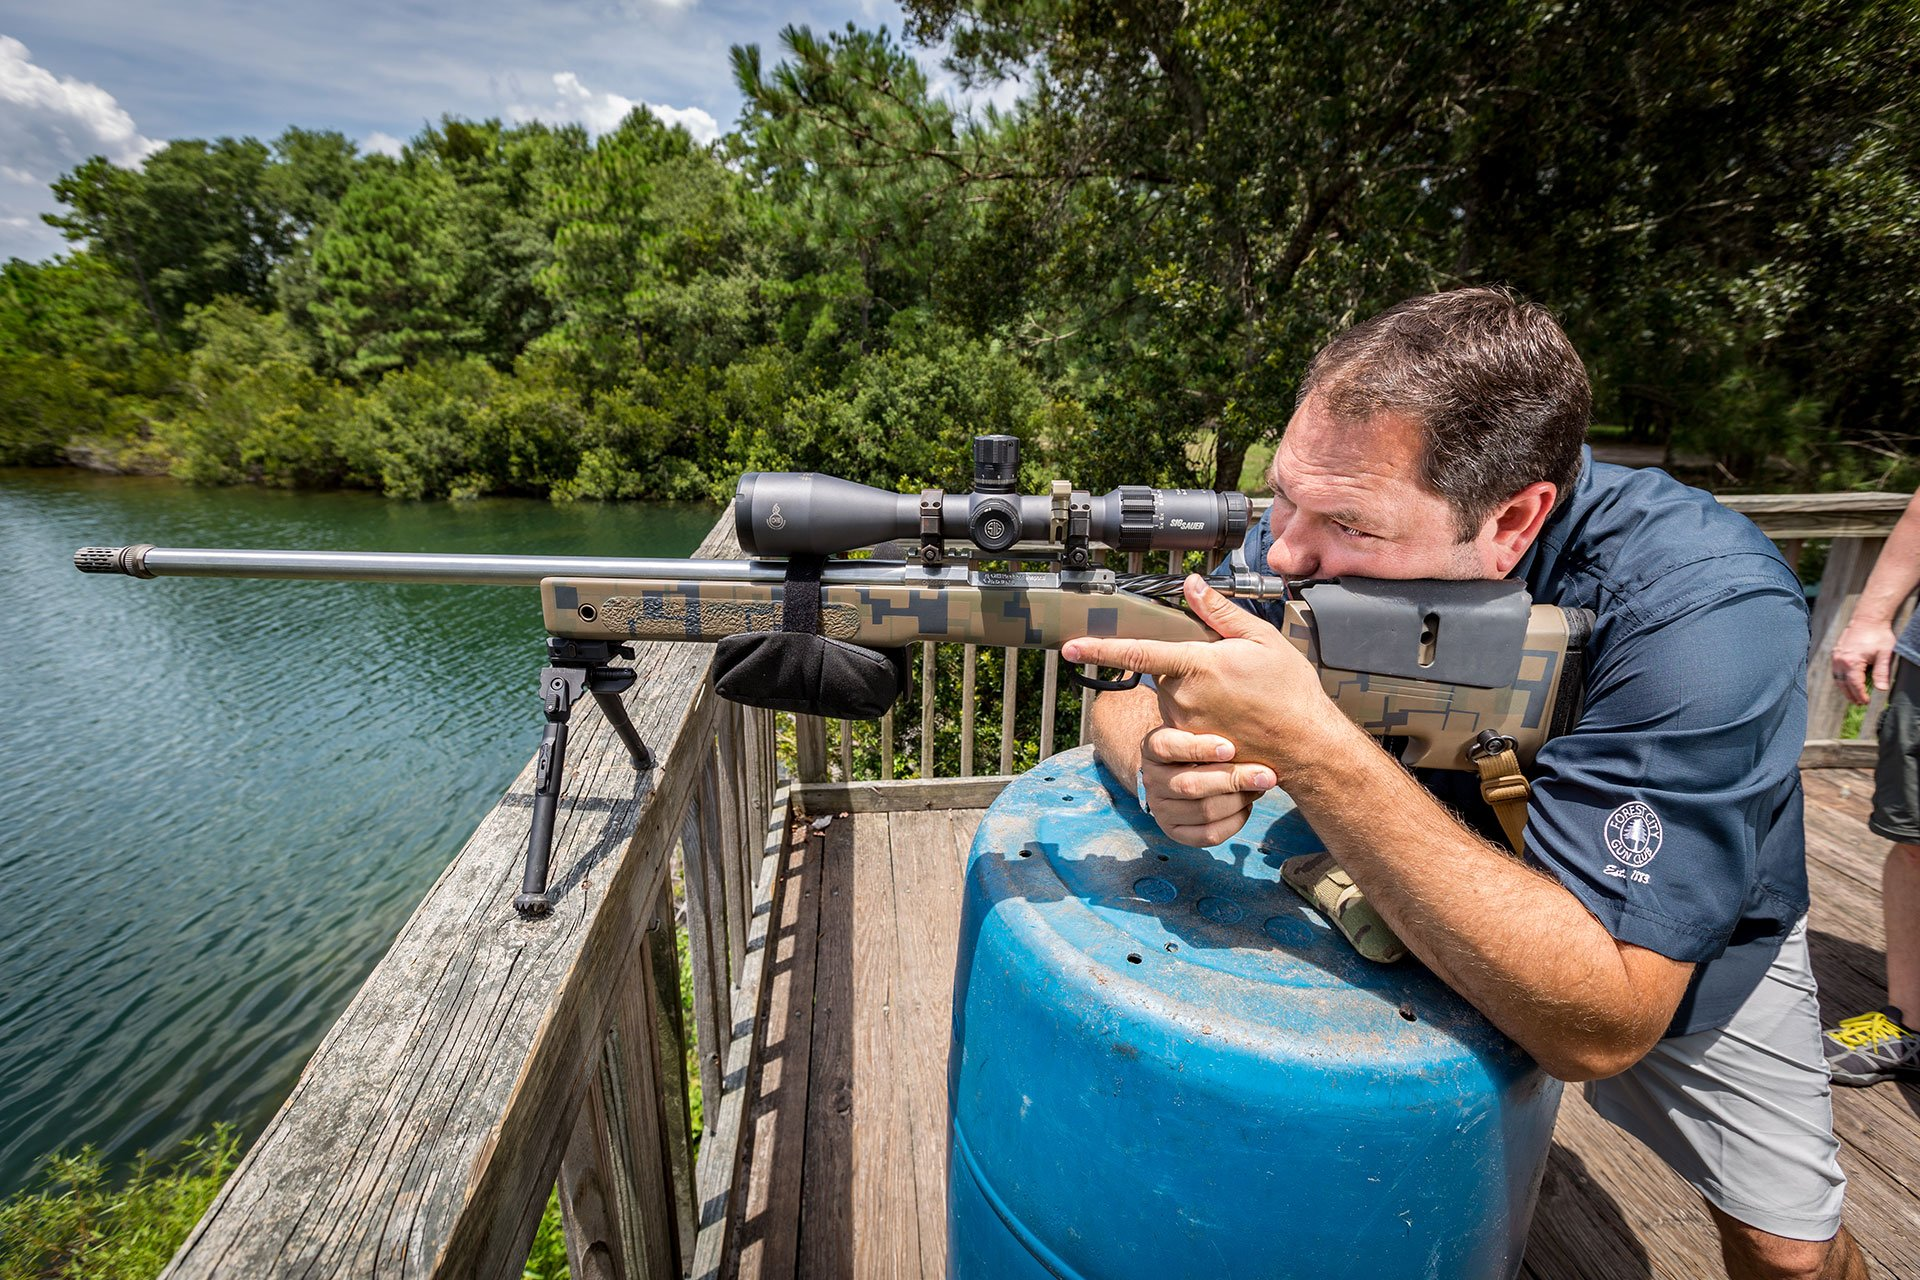 Precision Rifle Training & Matches - C&H Precision Weapons